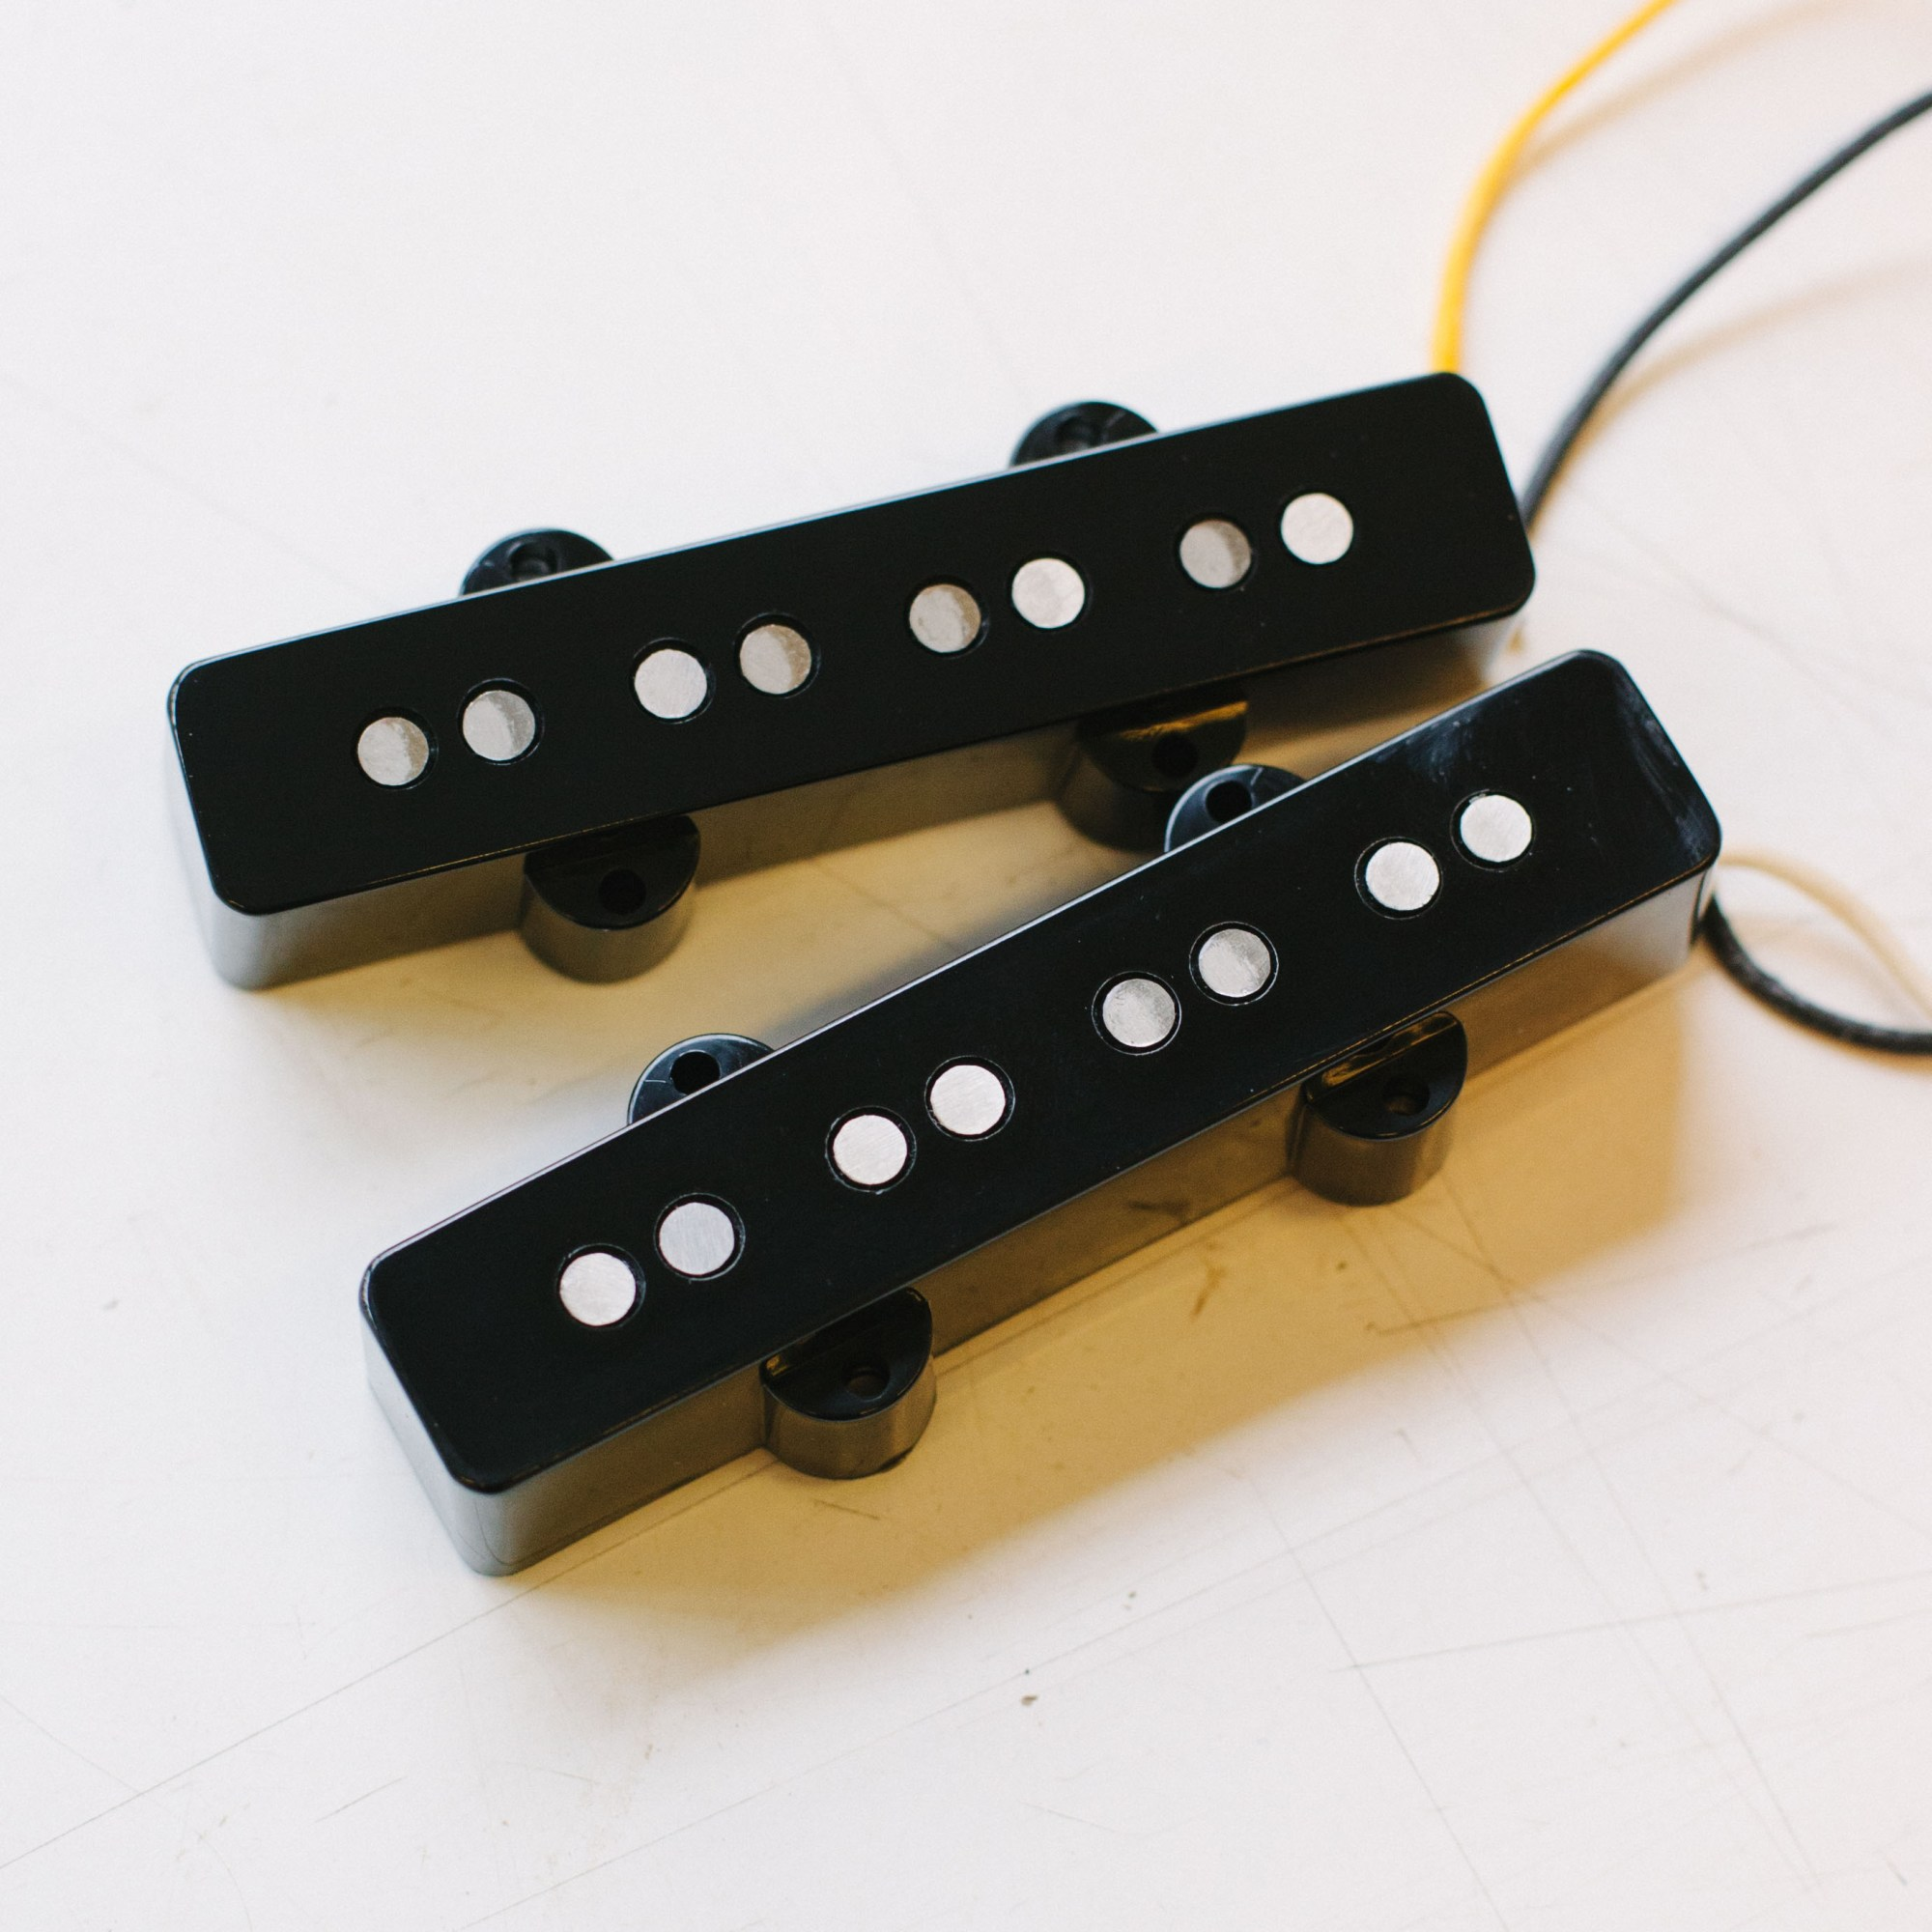 hight resolution of  pickups so you can achieve your desired tone below are some of the brands and models that we carry interested in using a pickup not listed below